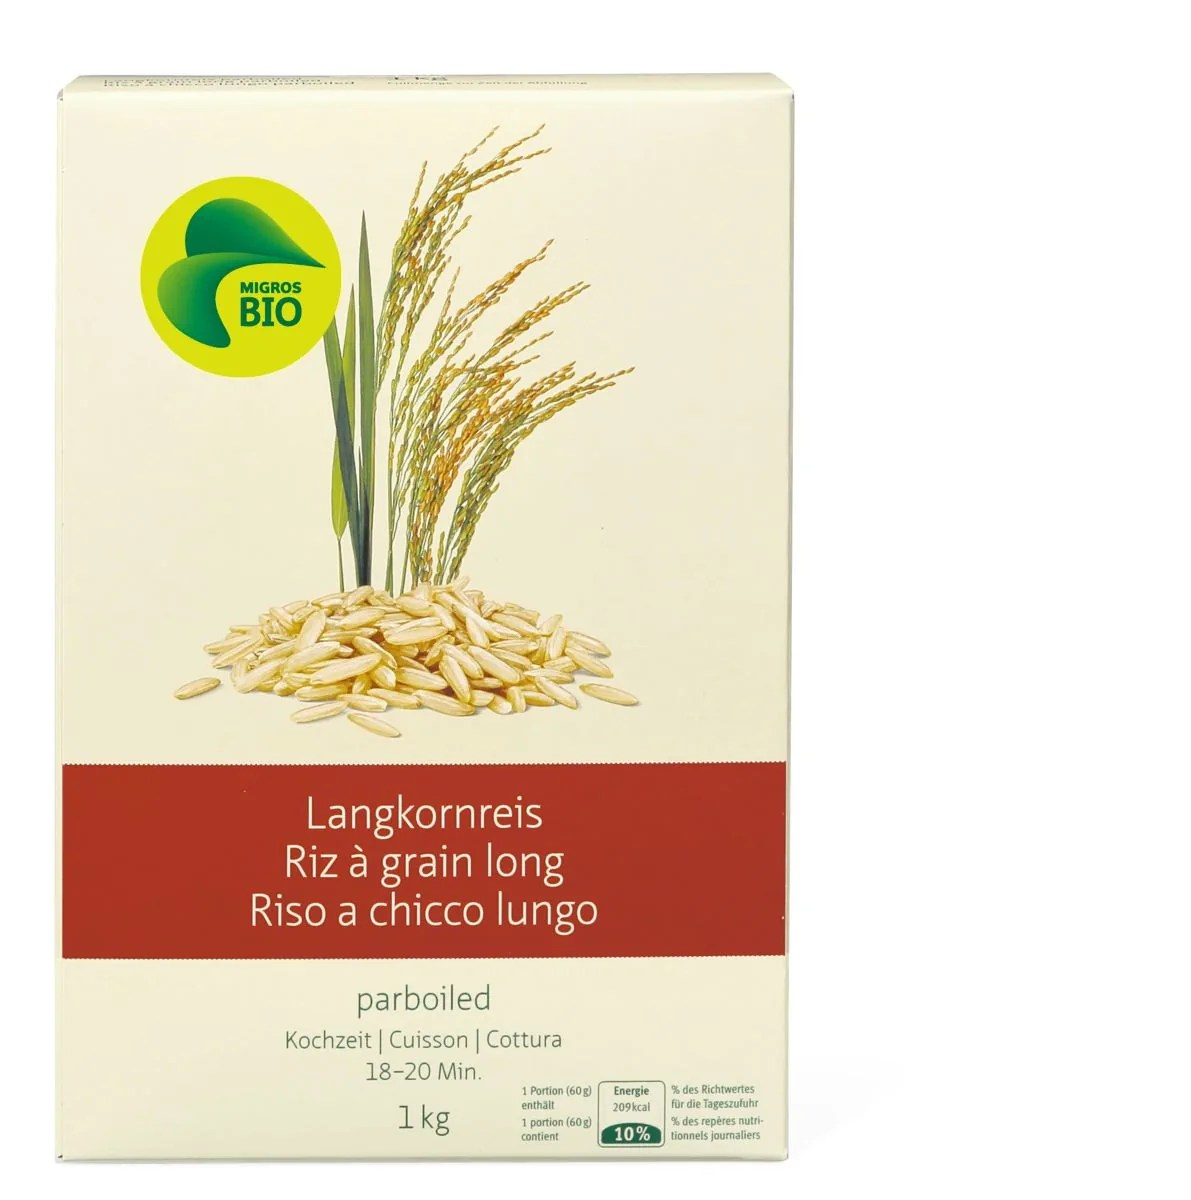 Grain Bio Bio Riz Grain Long Parboiled Migipedia